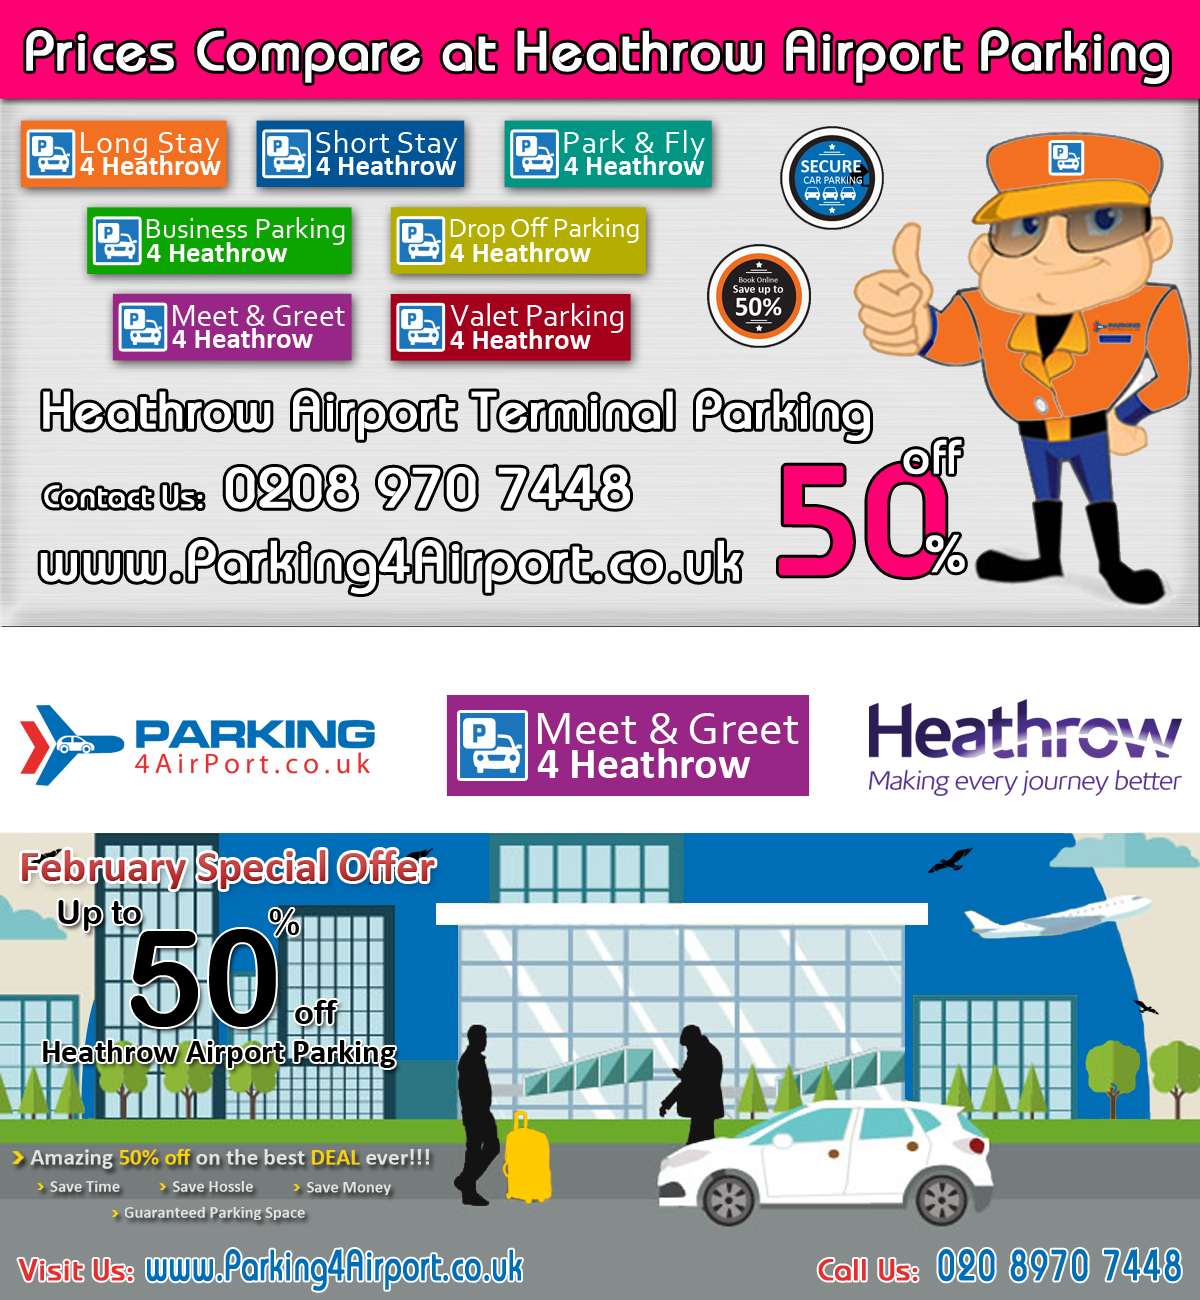 Pin by parking 4 airport on parking 4 heathrow pinterest park get heathrow airport car parking long stay short stay and meet greet at cheapest rate for and book online the best from comprehensive price comparison m4hsunfo